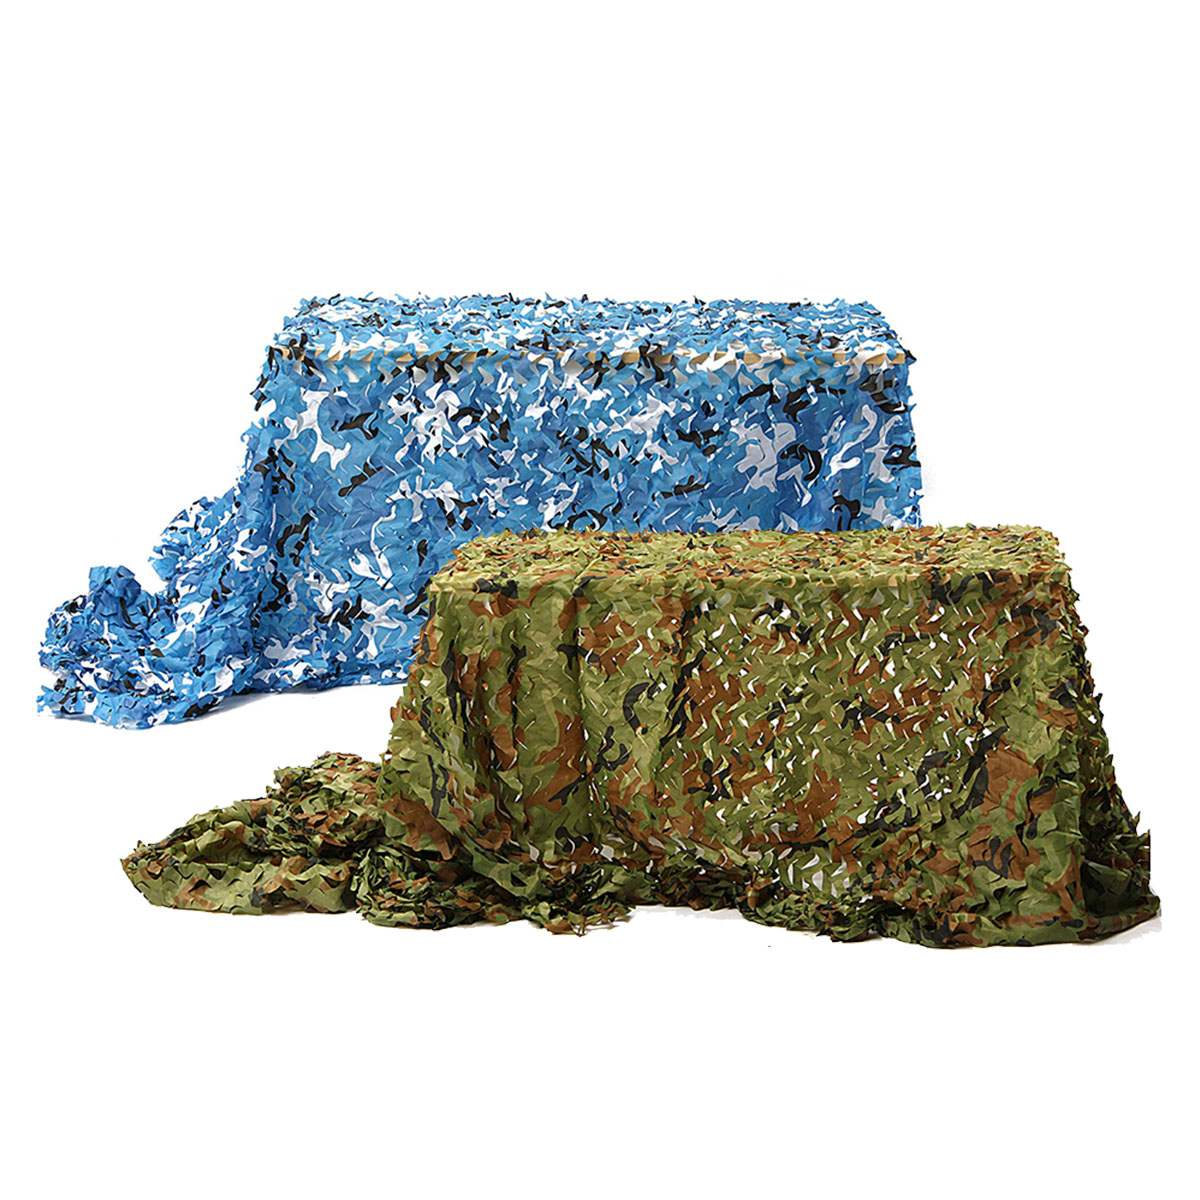 3.5M*3.5M Military Camouflage Net Tents Outdoor Hiking Tourist Camping Tents 150D Polyester Military Camouflage Net Camping Tent 5 5m camouflage net camping beach tents 150d polyester oxford ultralight sun uv camouflage net outdoor camping beach tents